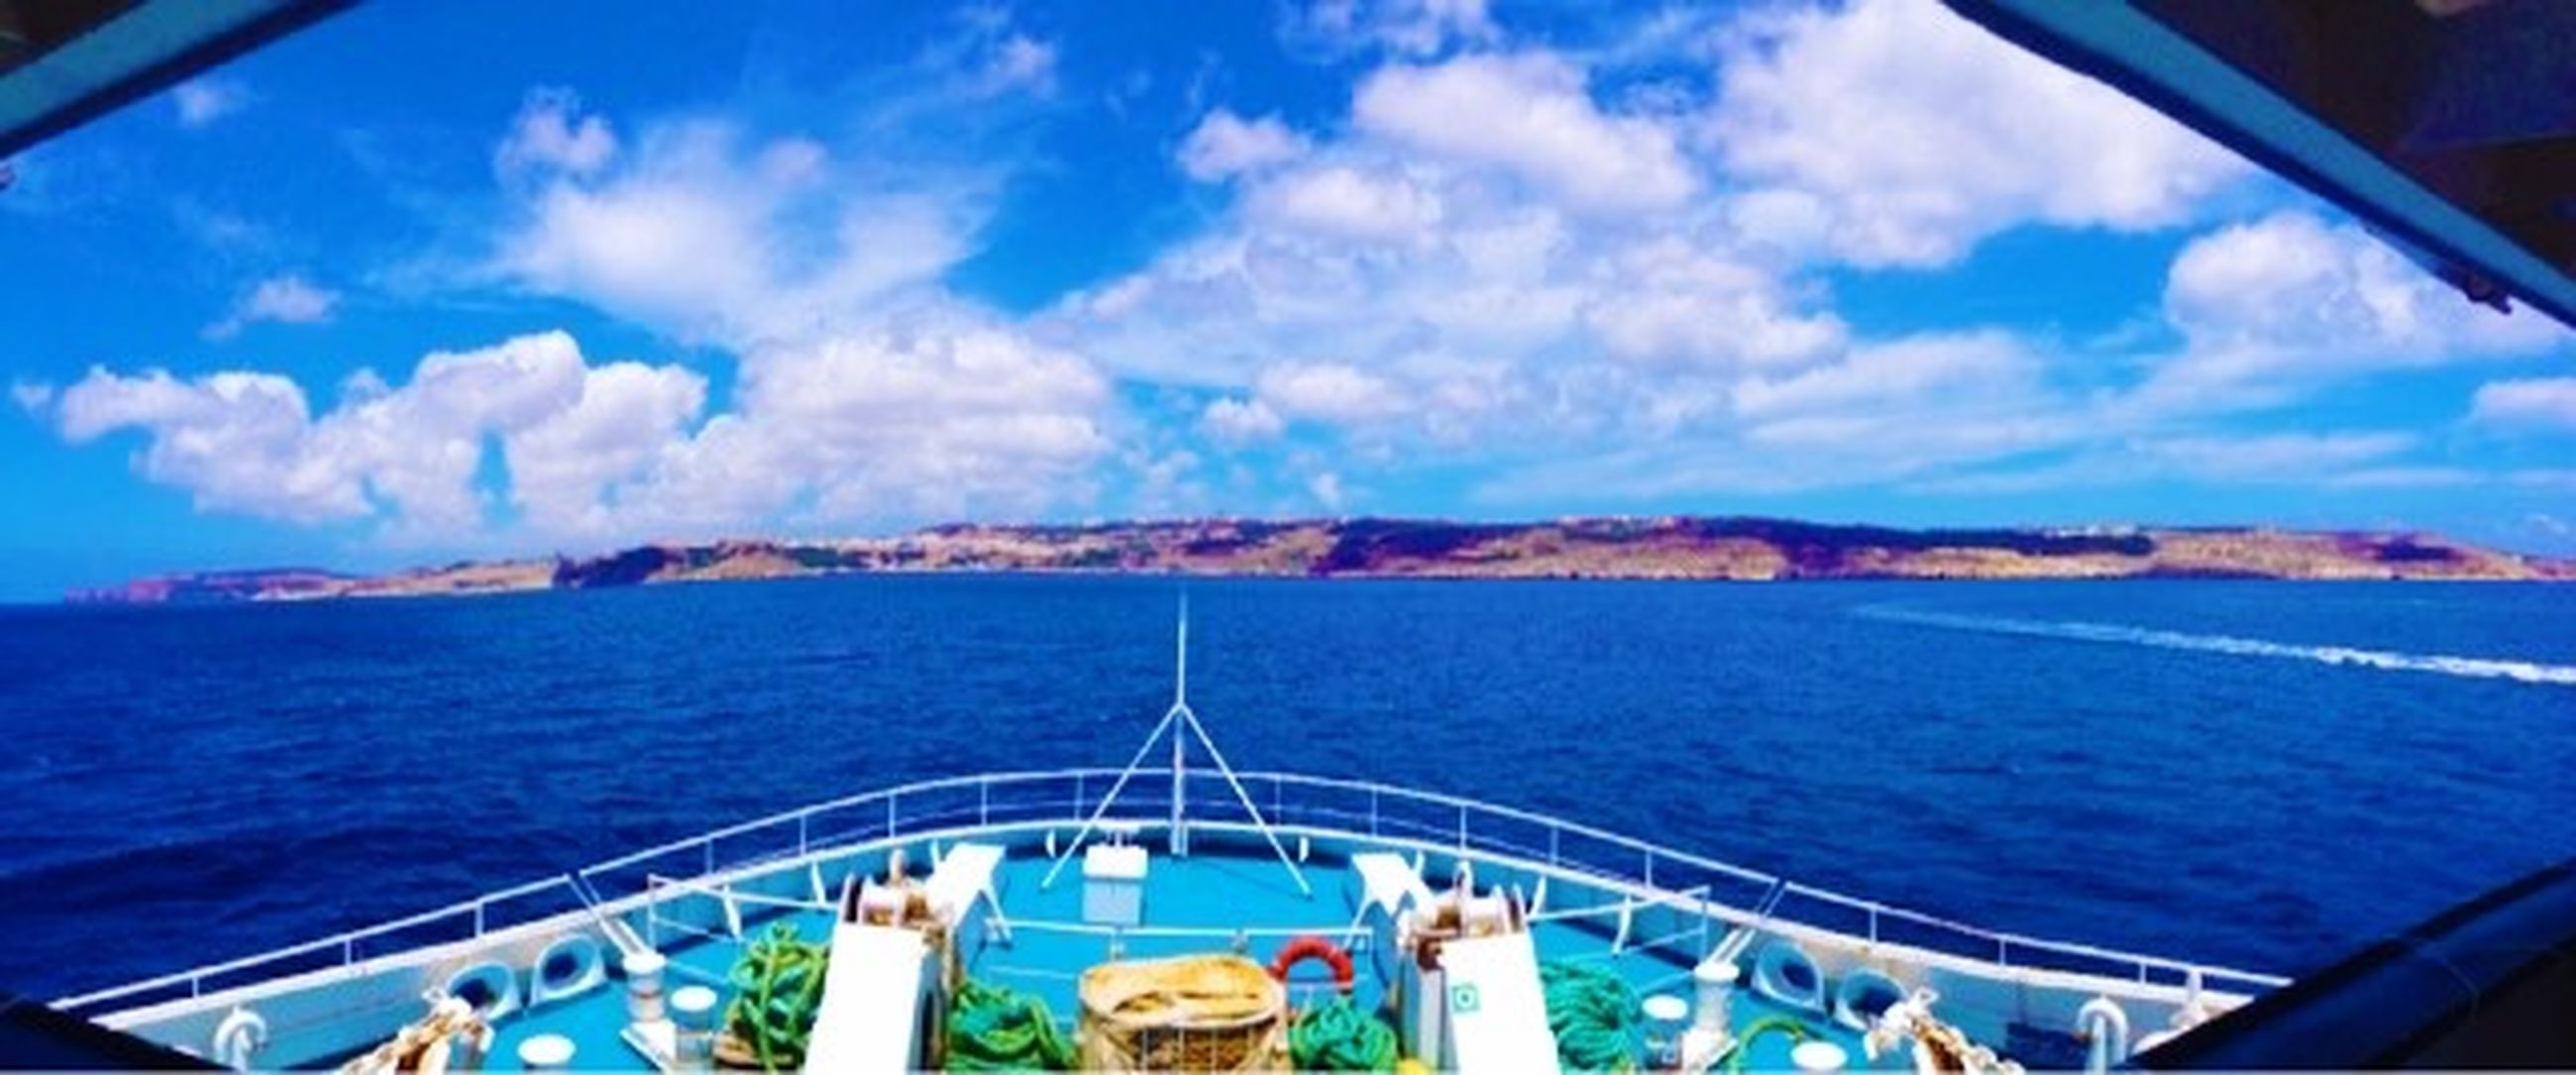 sea, water, sky, nautical vessel, transportation, blue, cloud - sky, vacations, mode of transport, leisure activity, scenics, boat, lifestyles, travel, cloud, mountain, tourism, nature, beauty in nature